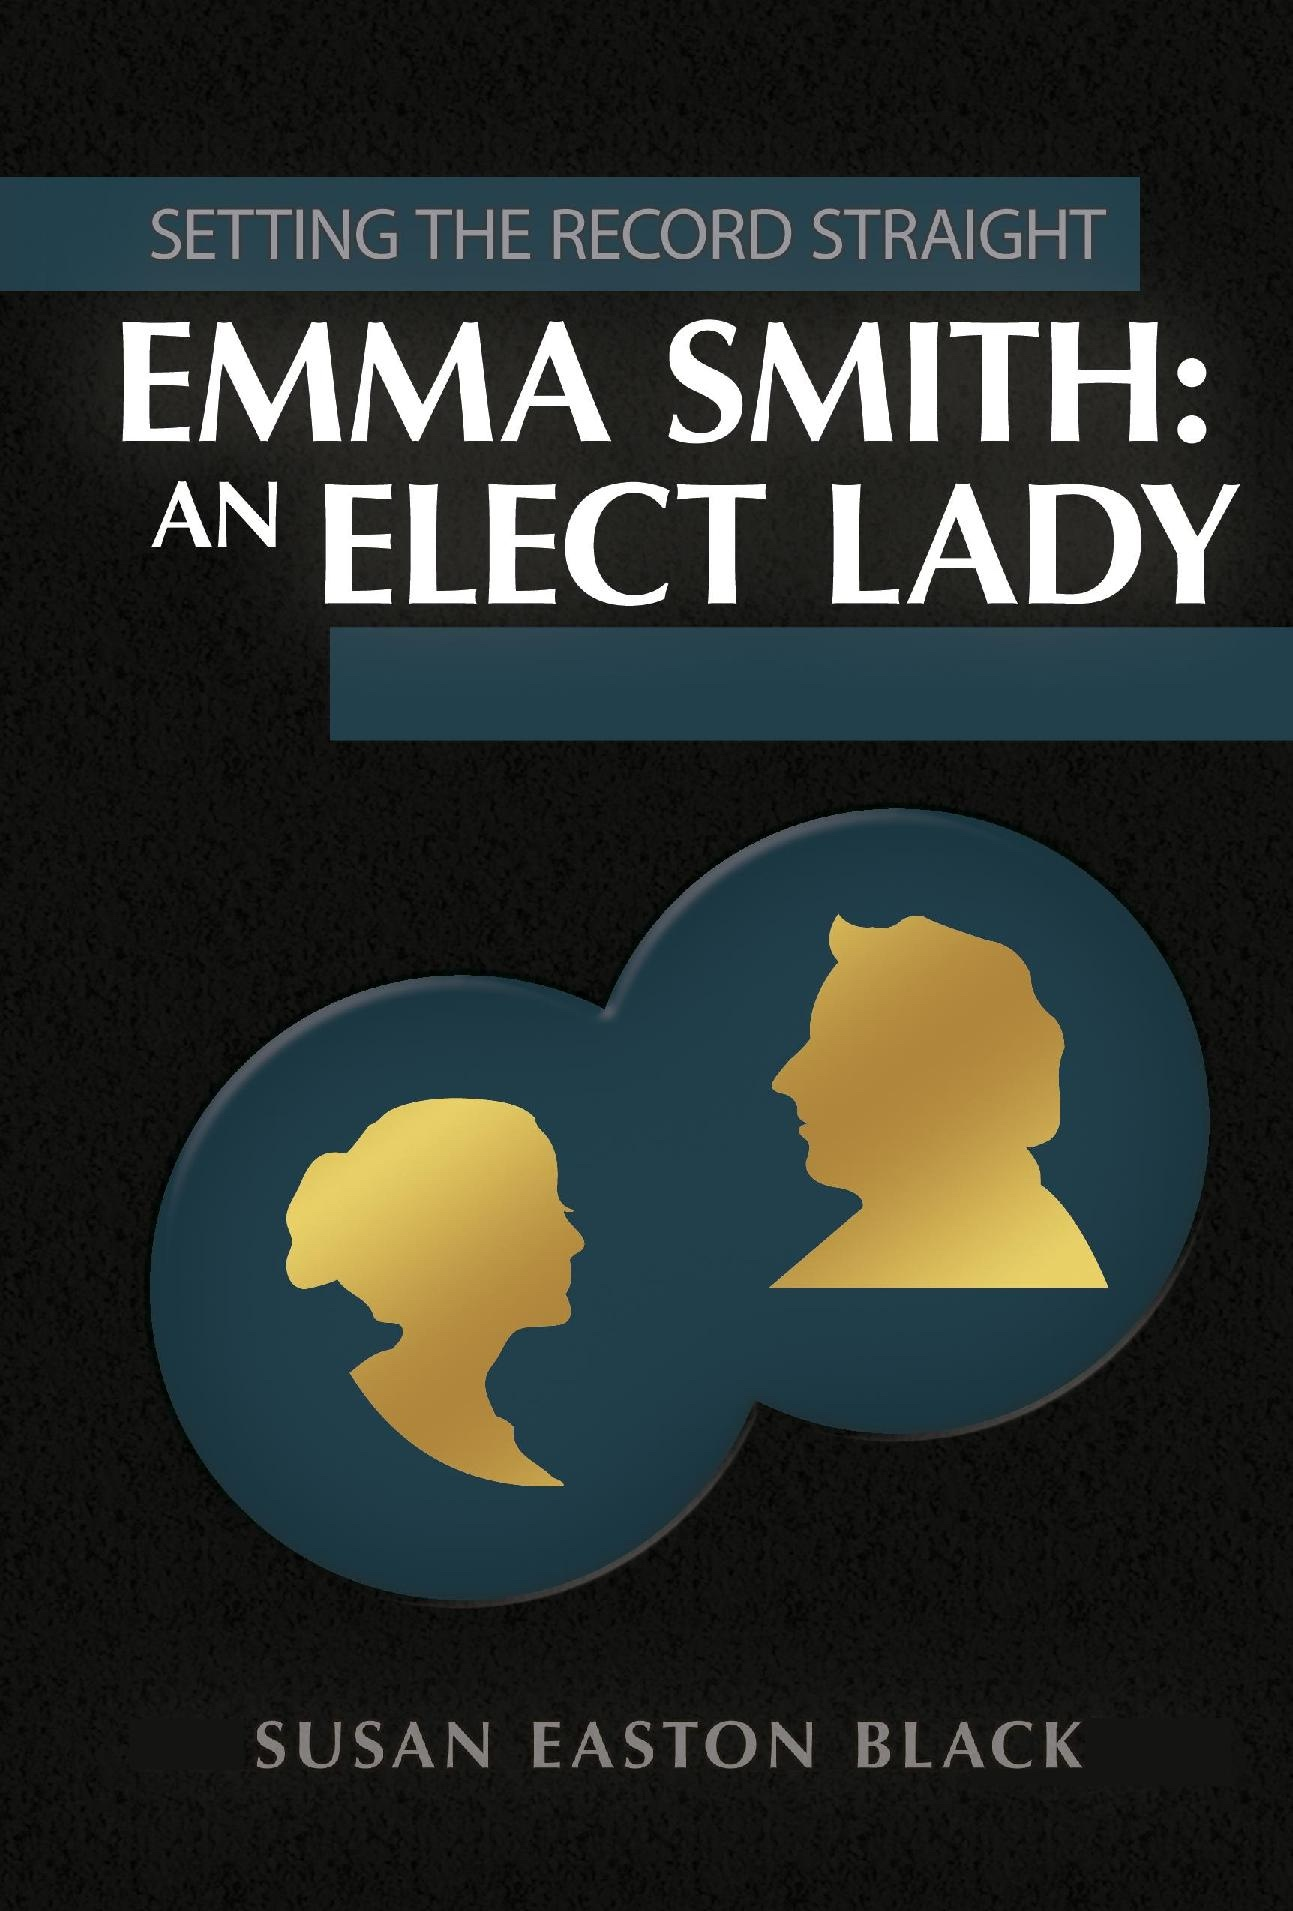 EMMA SMITH - AN ELECT LADY - Setting the Record Straight, Black, Susan Easton